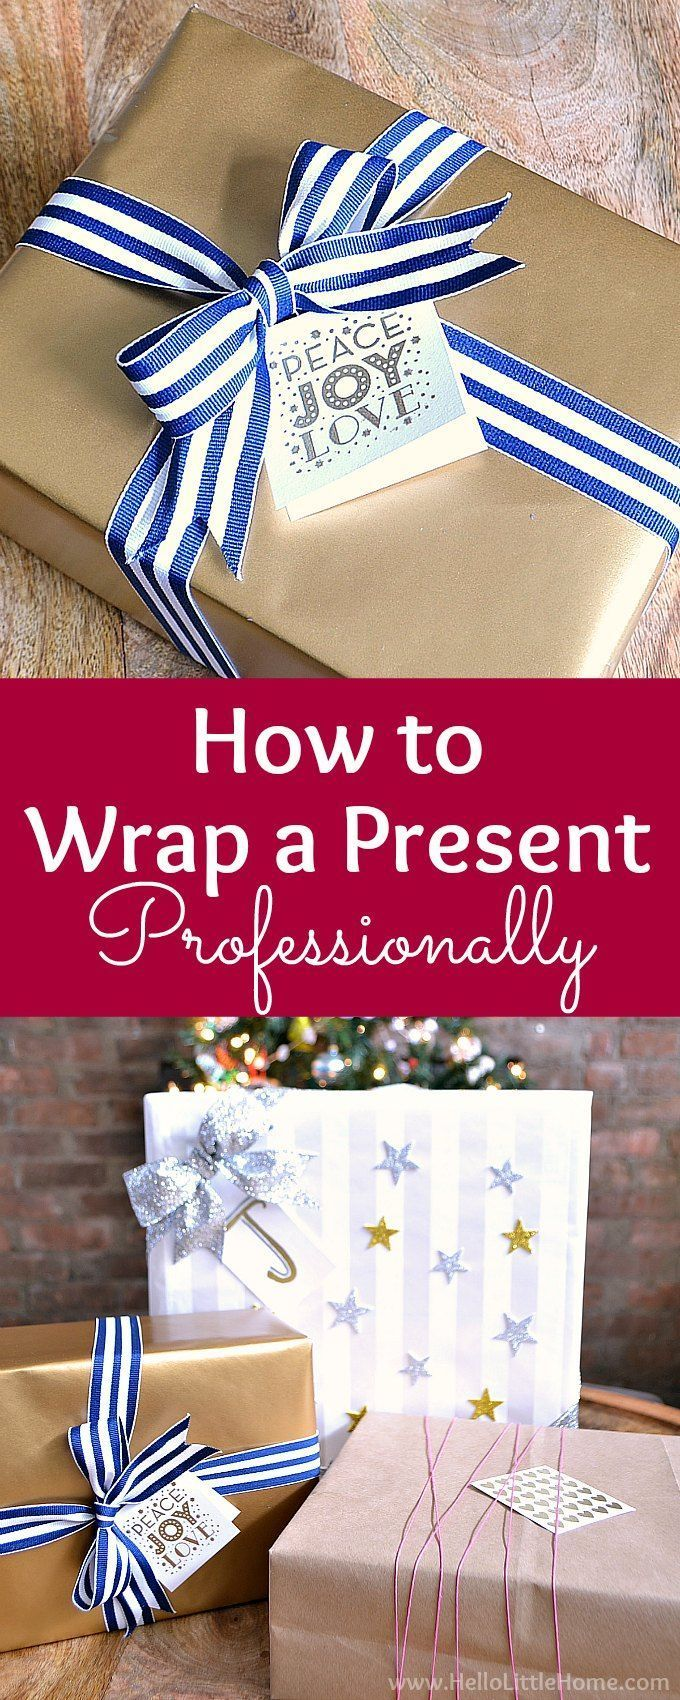 How to Wrap a Present Professionally Wrap gifts like a pro with this easy tutorial that shows you how to wrap a present perfectly step by step These easy gift wrapping ti...